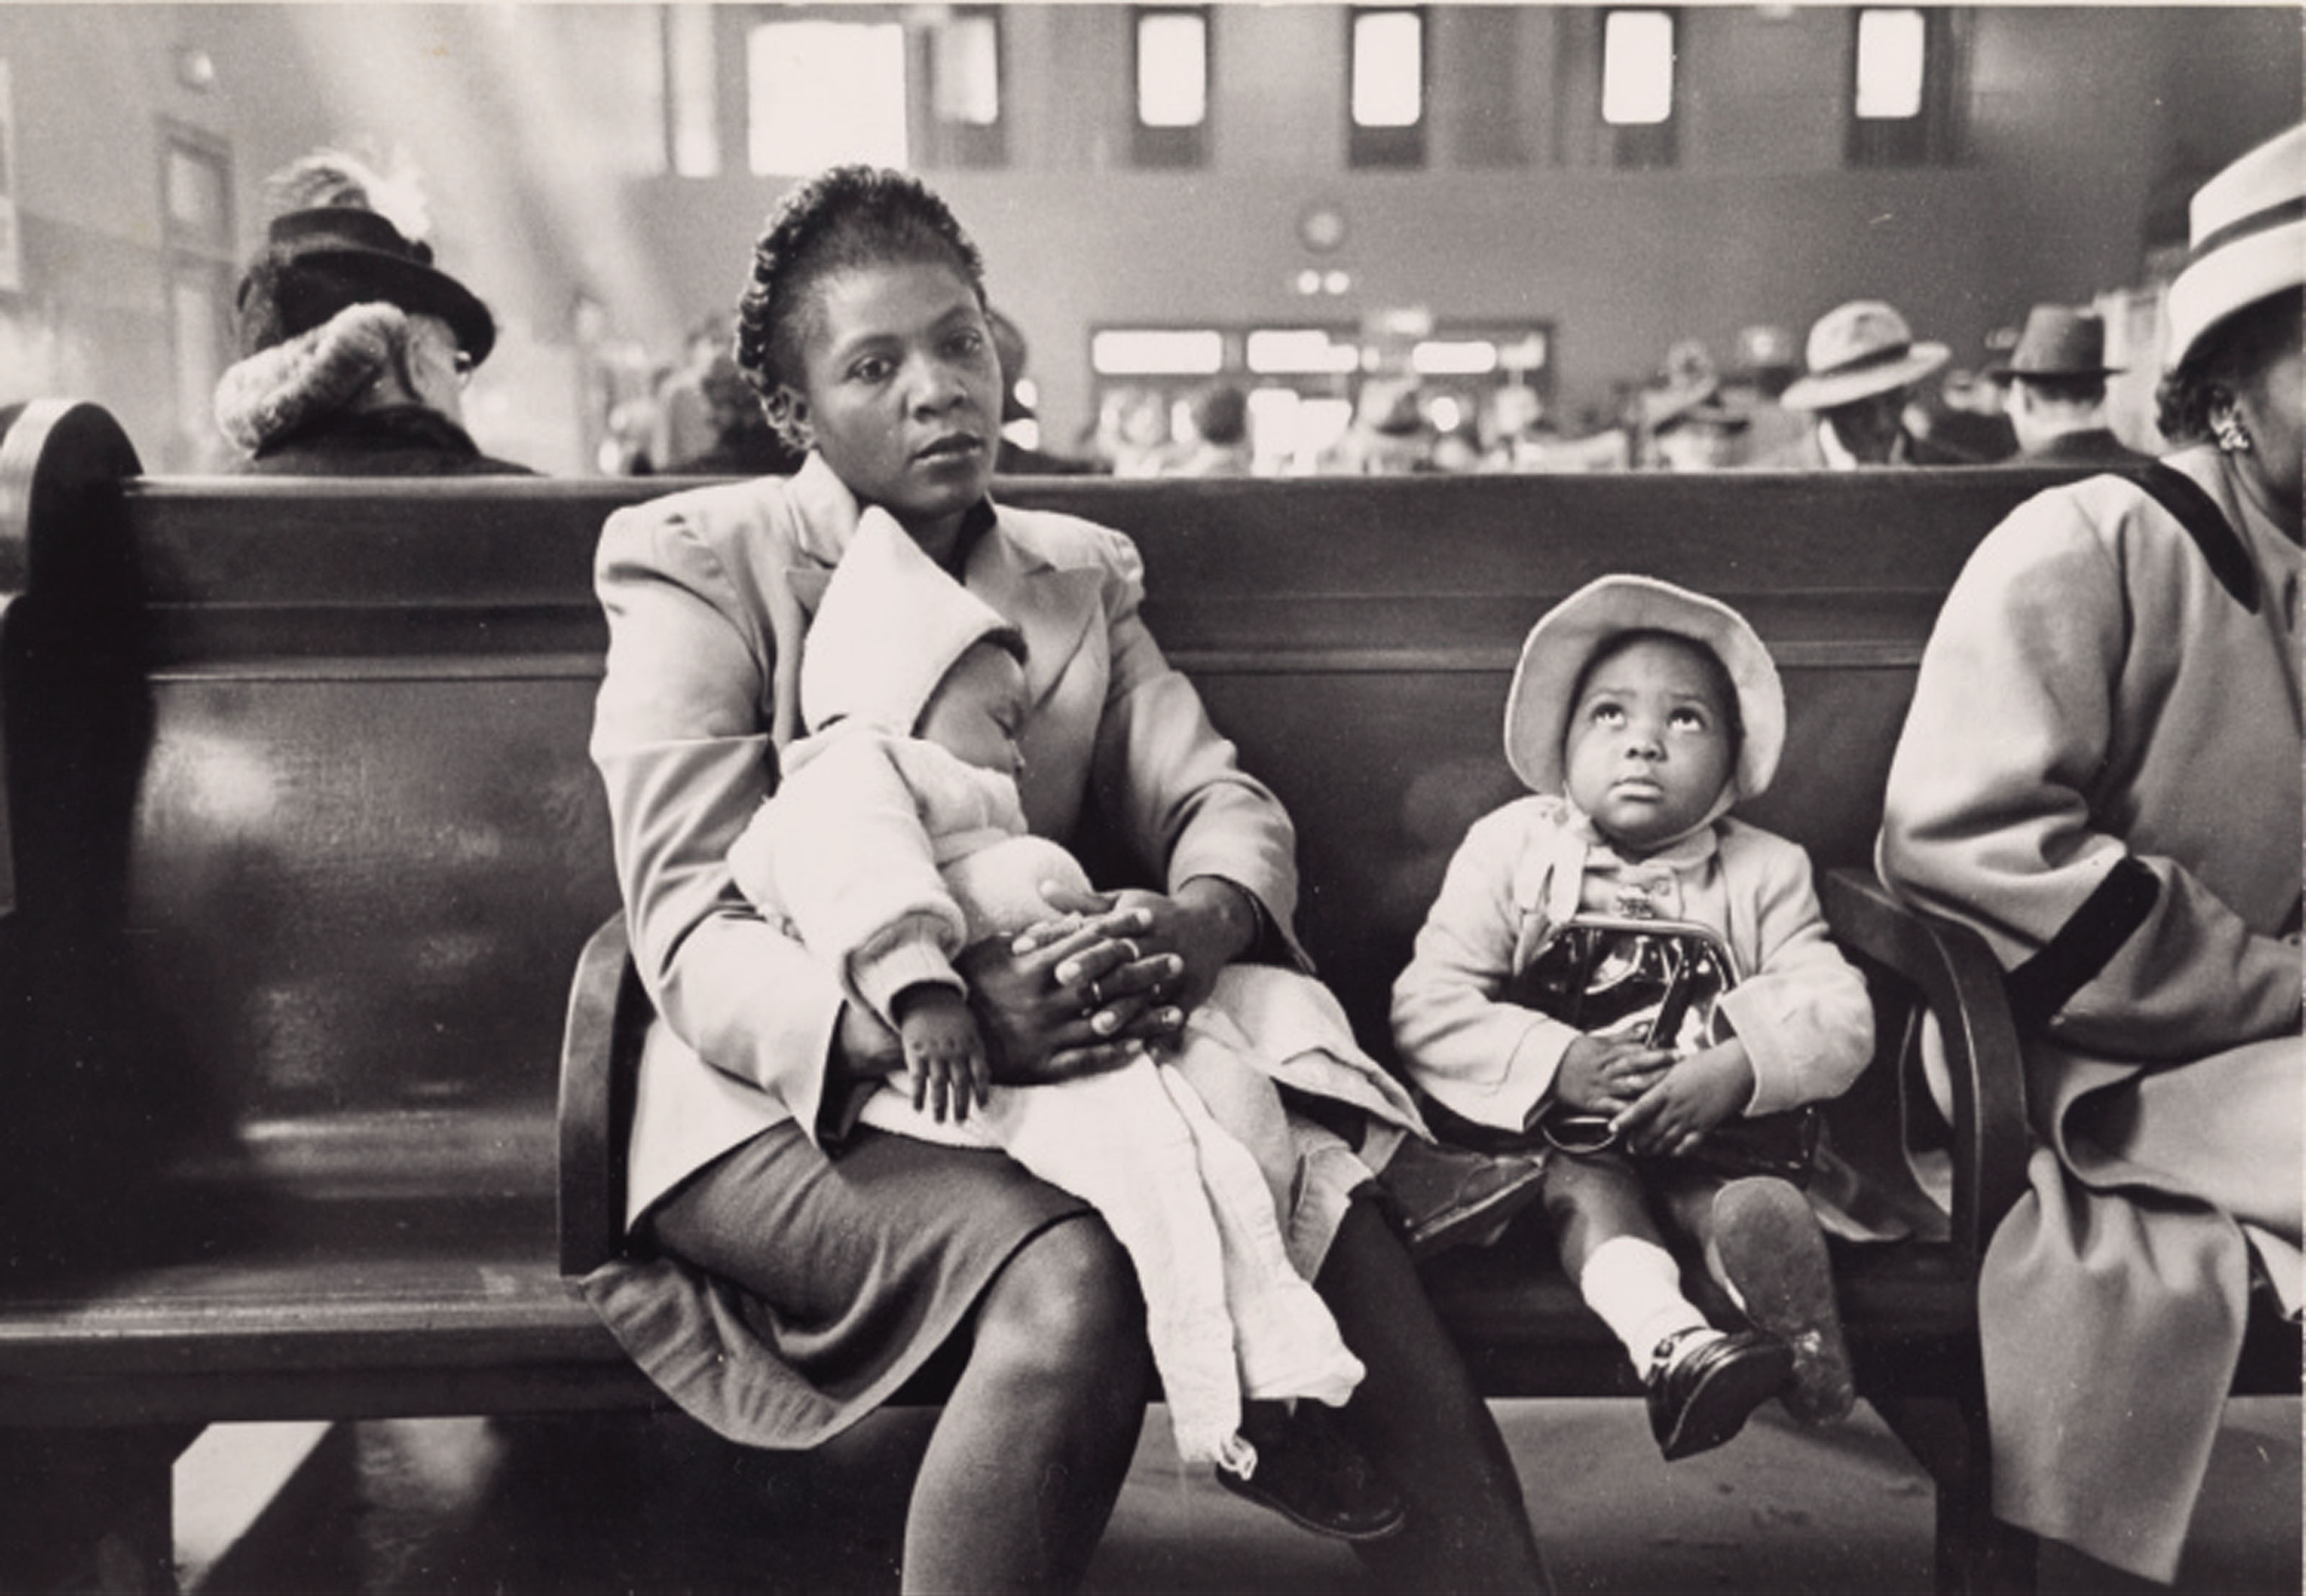 In the Waiting Room, Greyhound Bus Terminal, New York, c. 1949